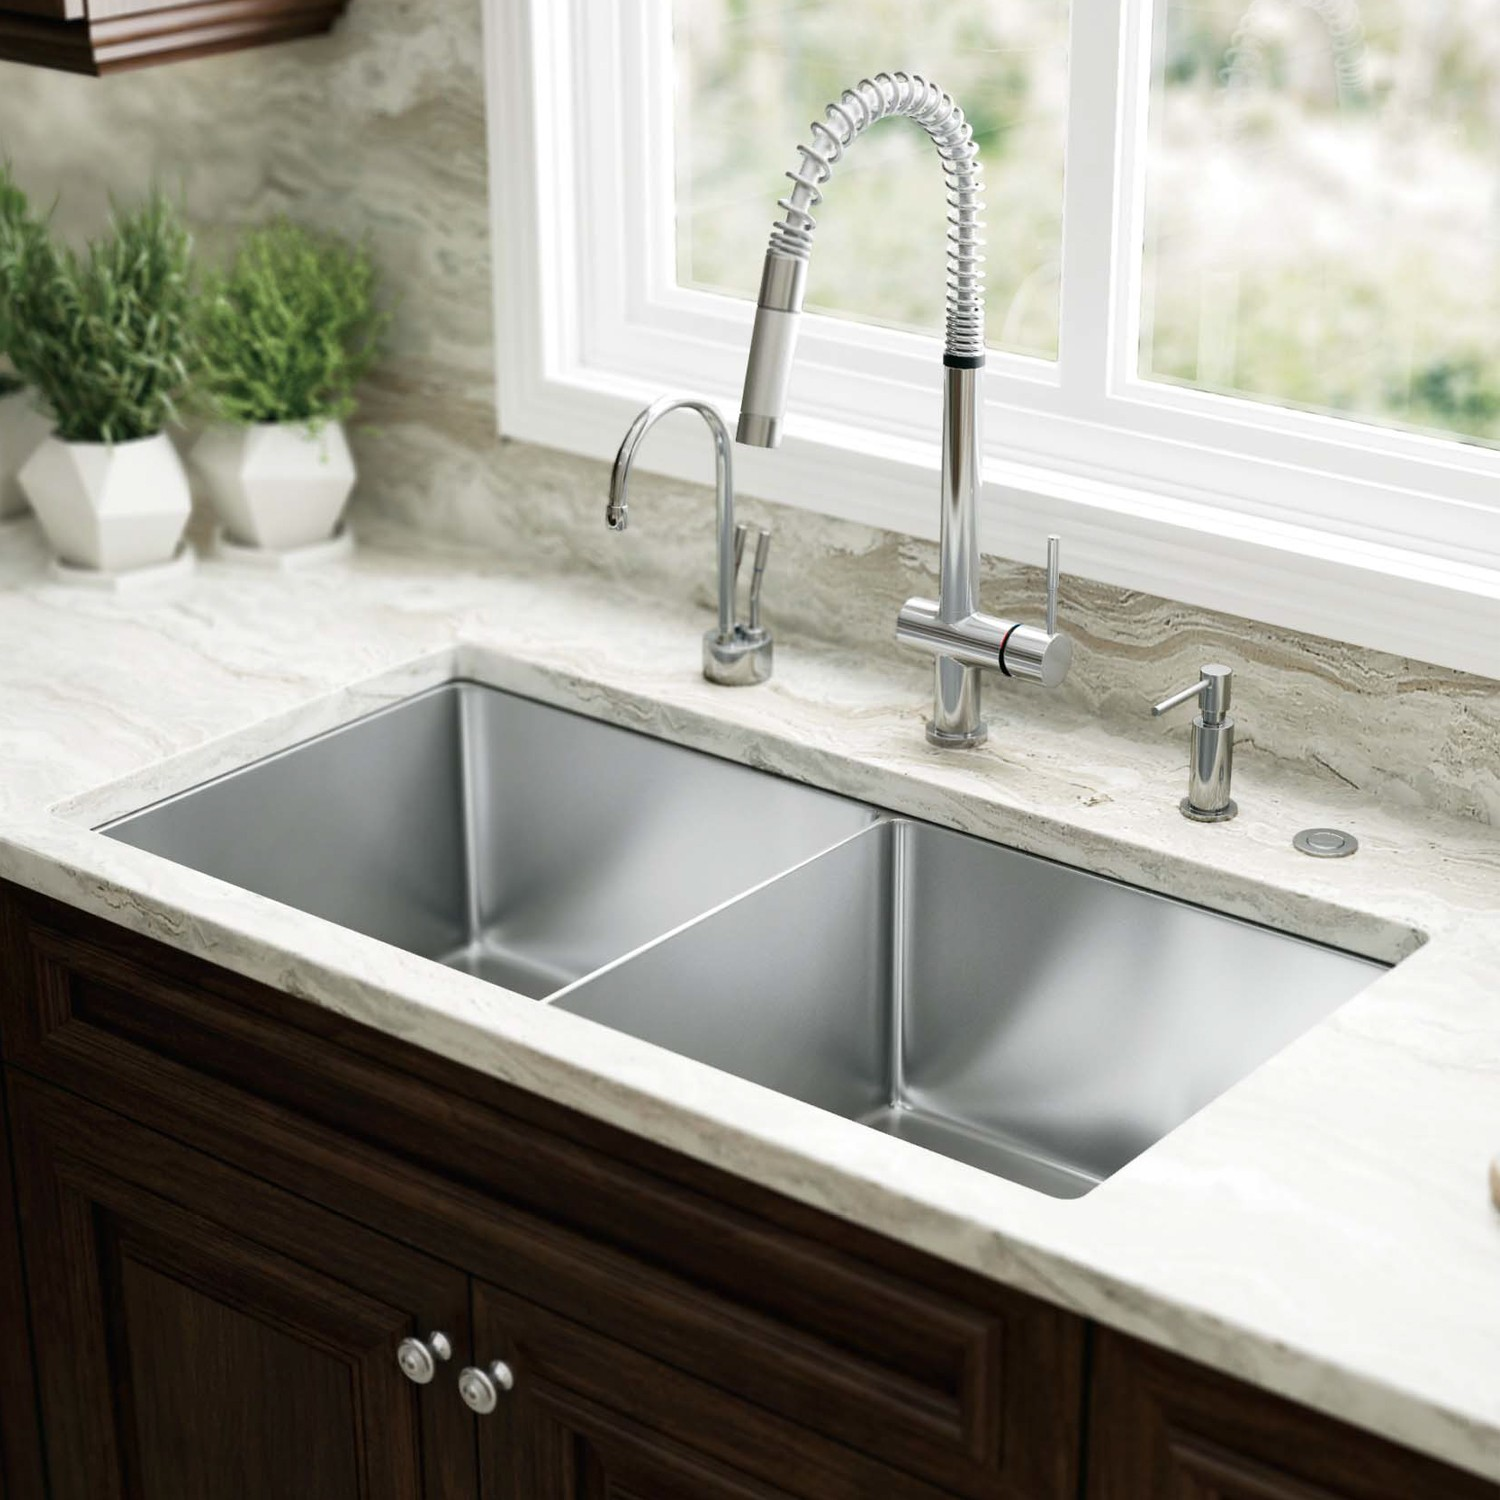 Kitchen Sinks  Accessories  Designers Plumbing